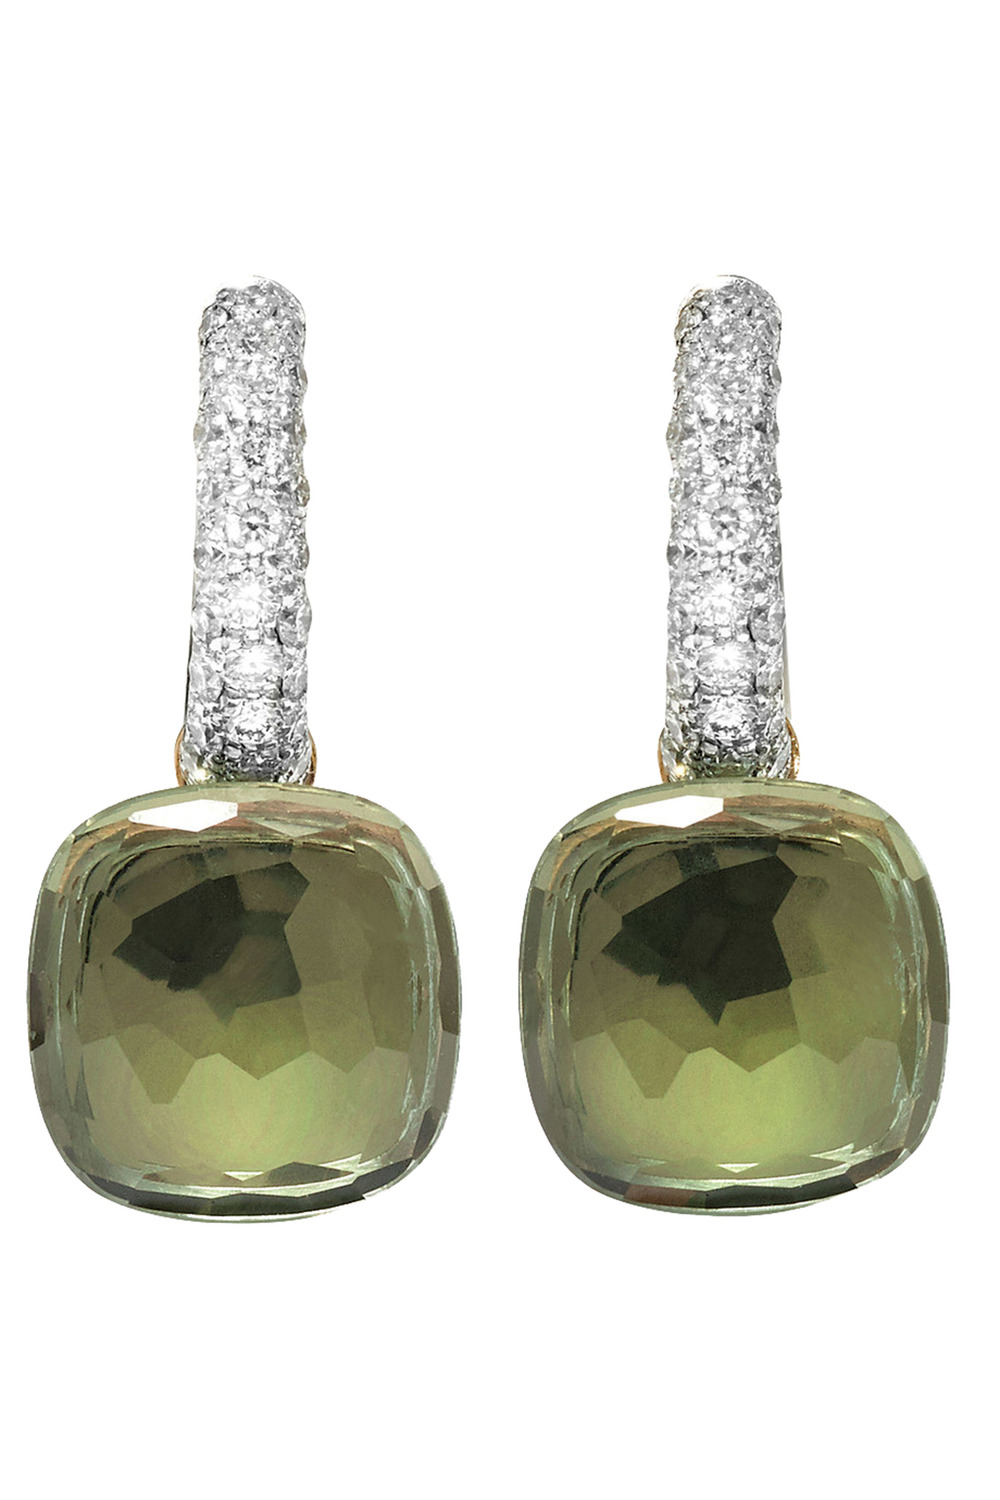 Pomellato Nudo White & Rose Gold with Prasiolite and Diamonds Earrings  $8,730